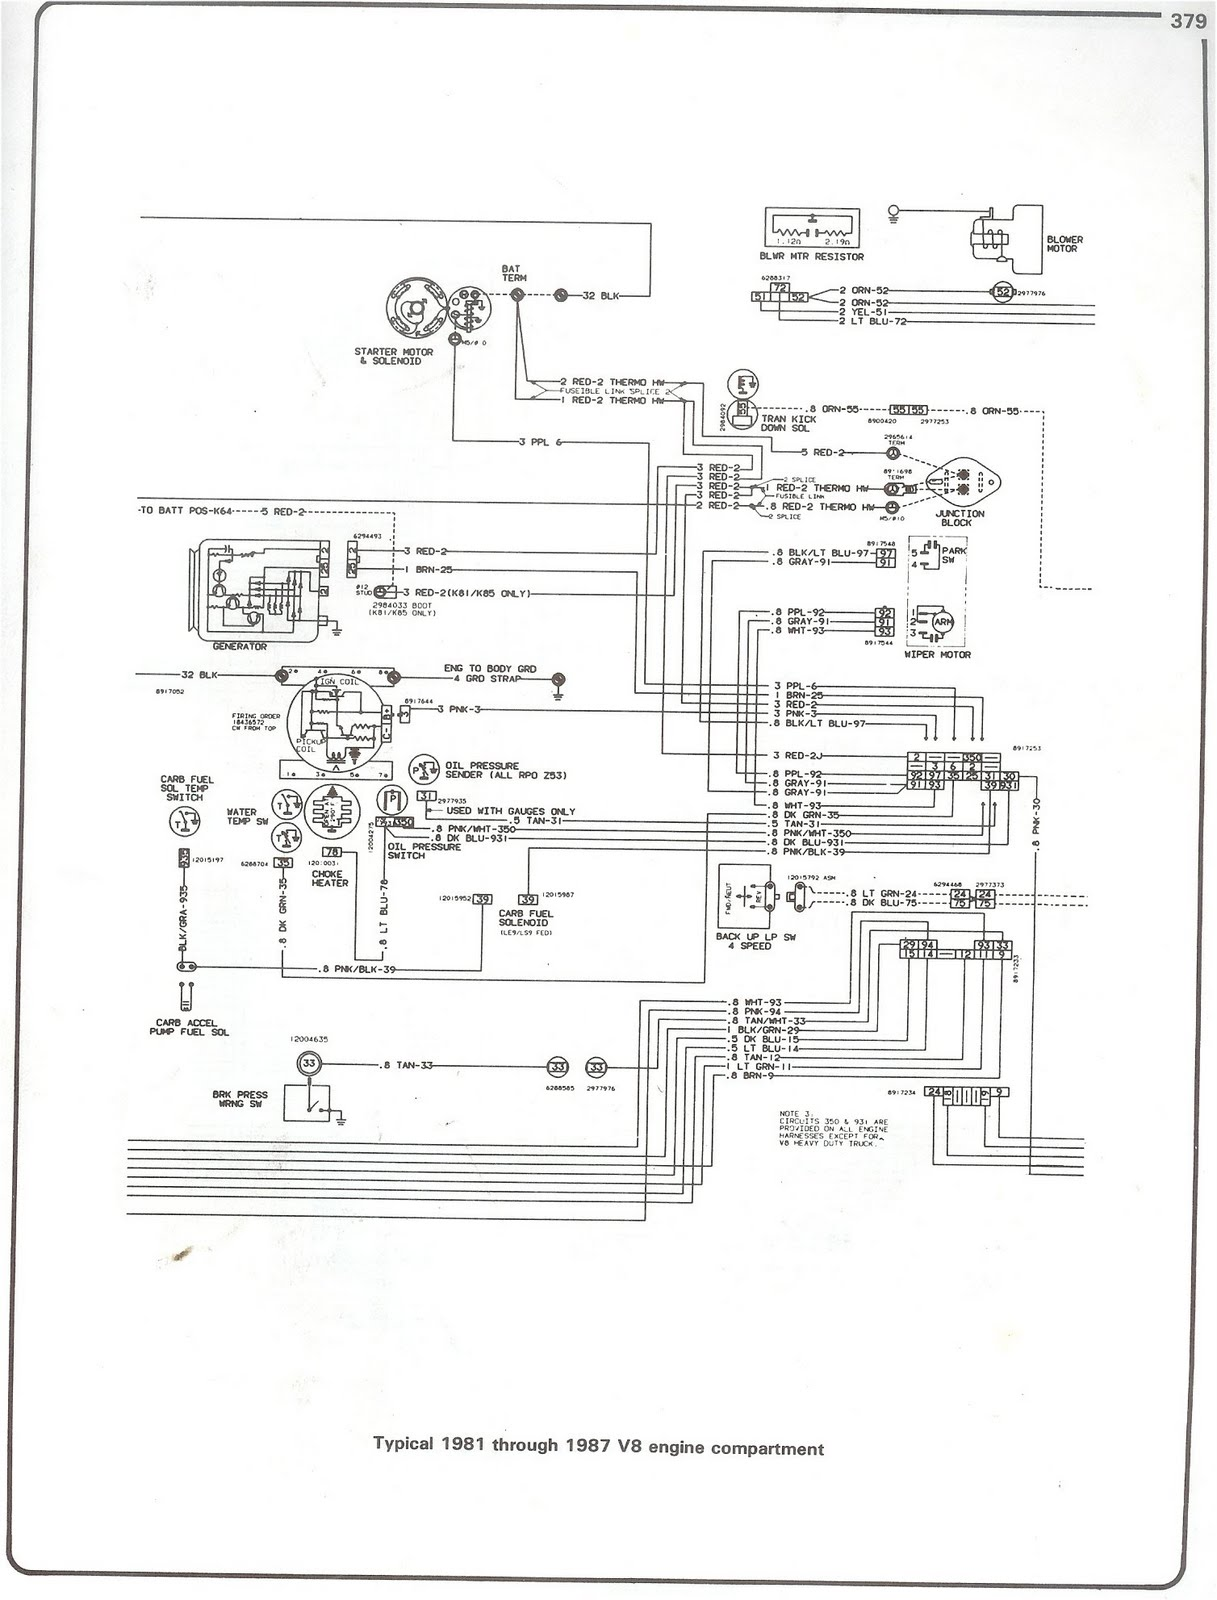 Free Auto Wiring Diagram: 19811987 Chevrolet V8 Truck Engine Compartment